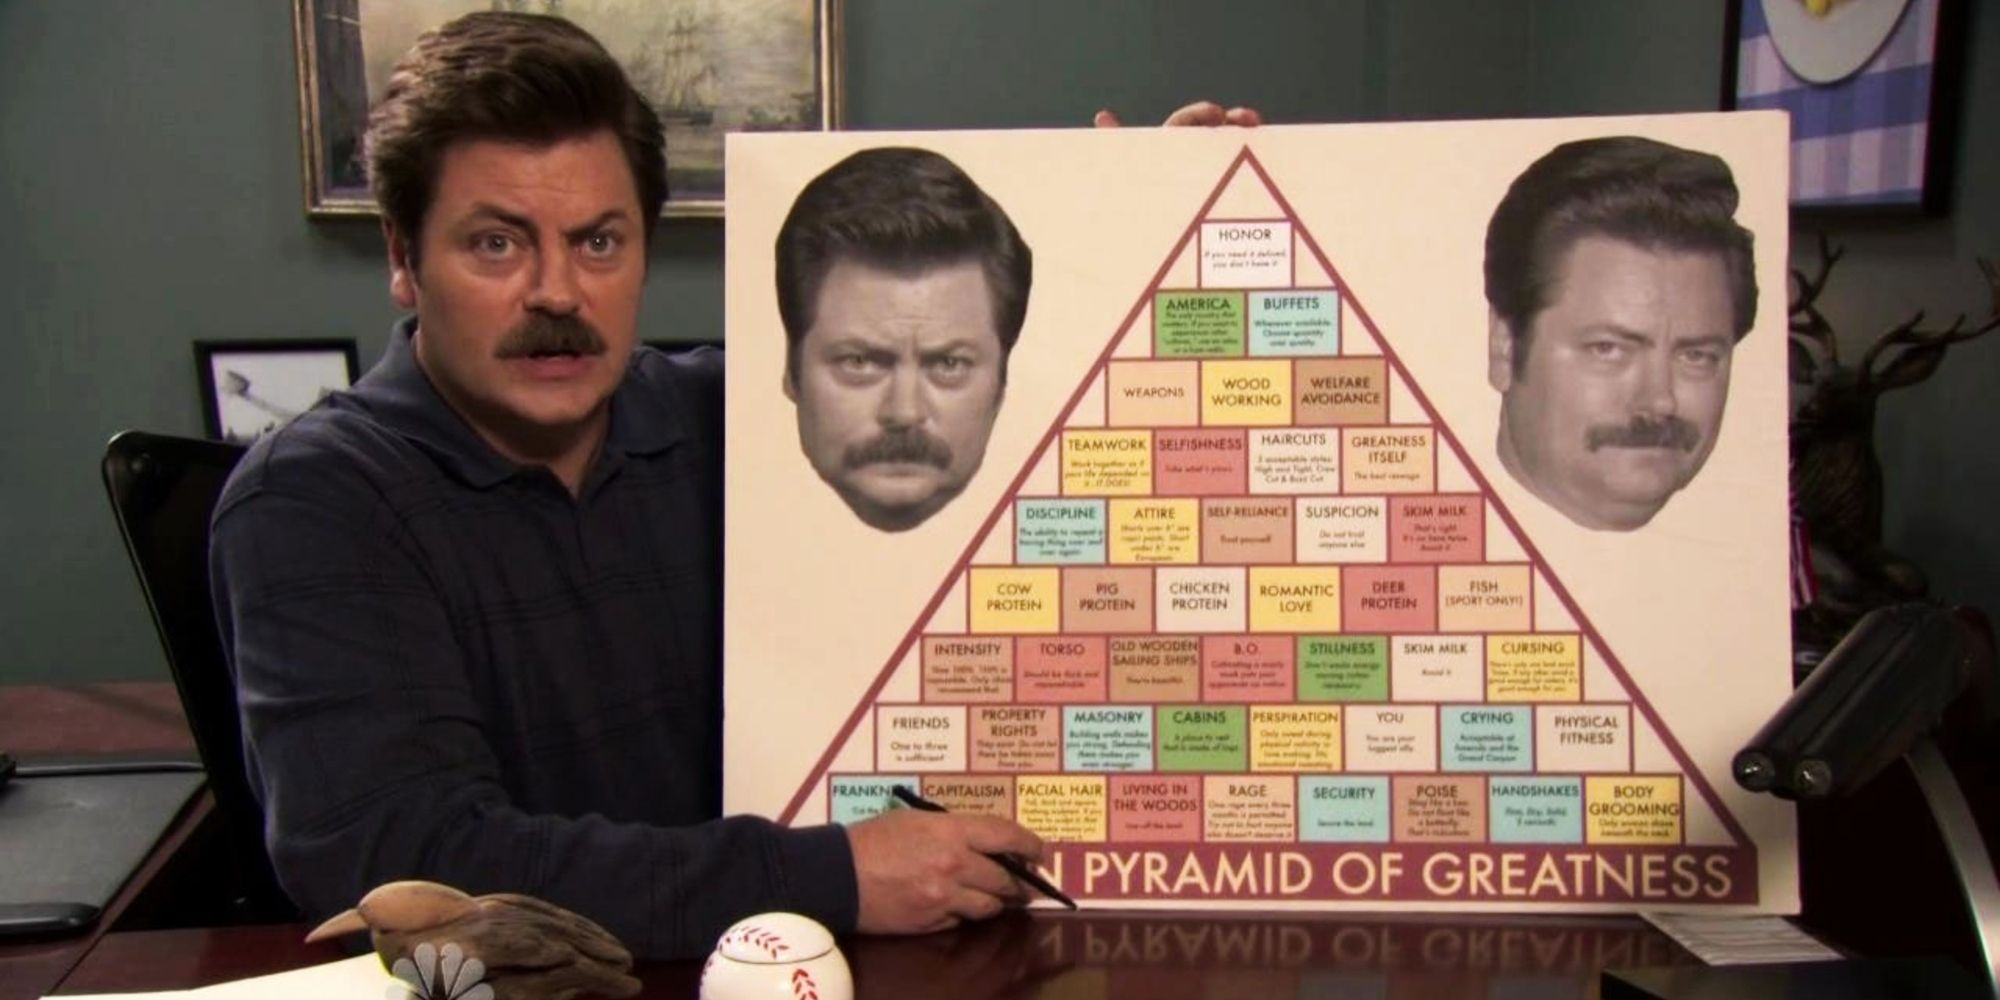 Read All Of Ron Swanson S Pyramid Of Greatness Here